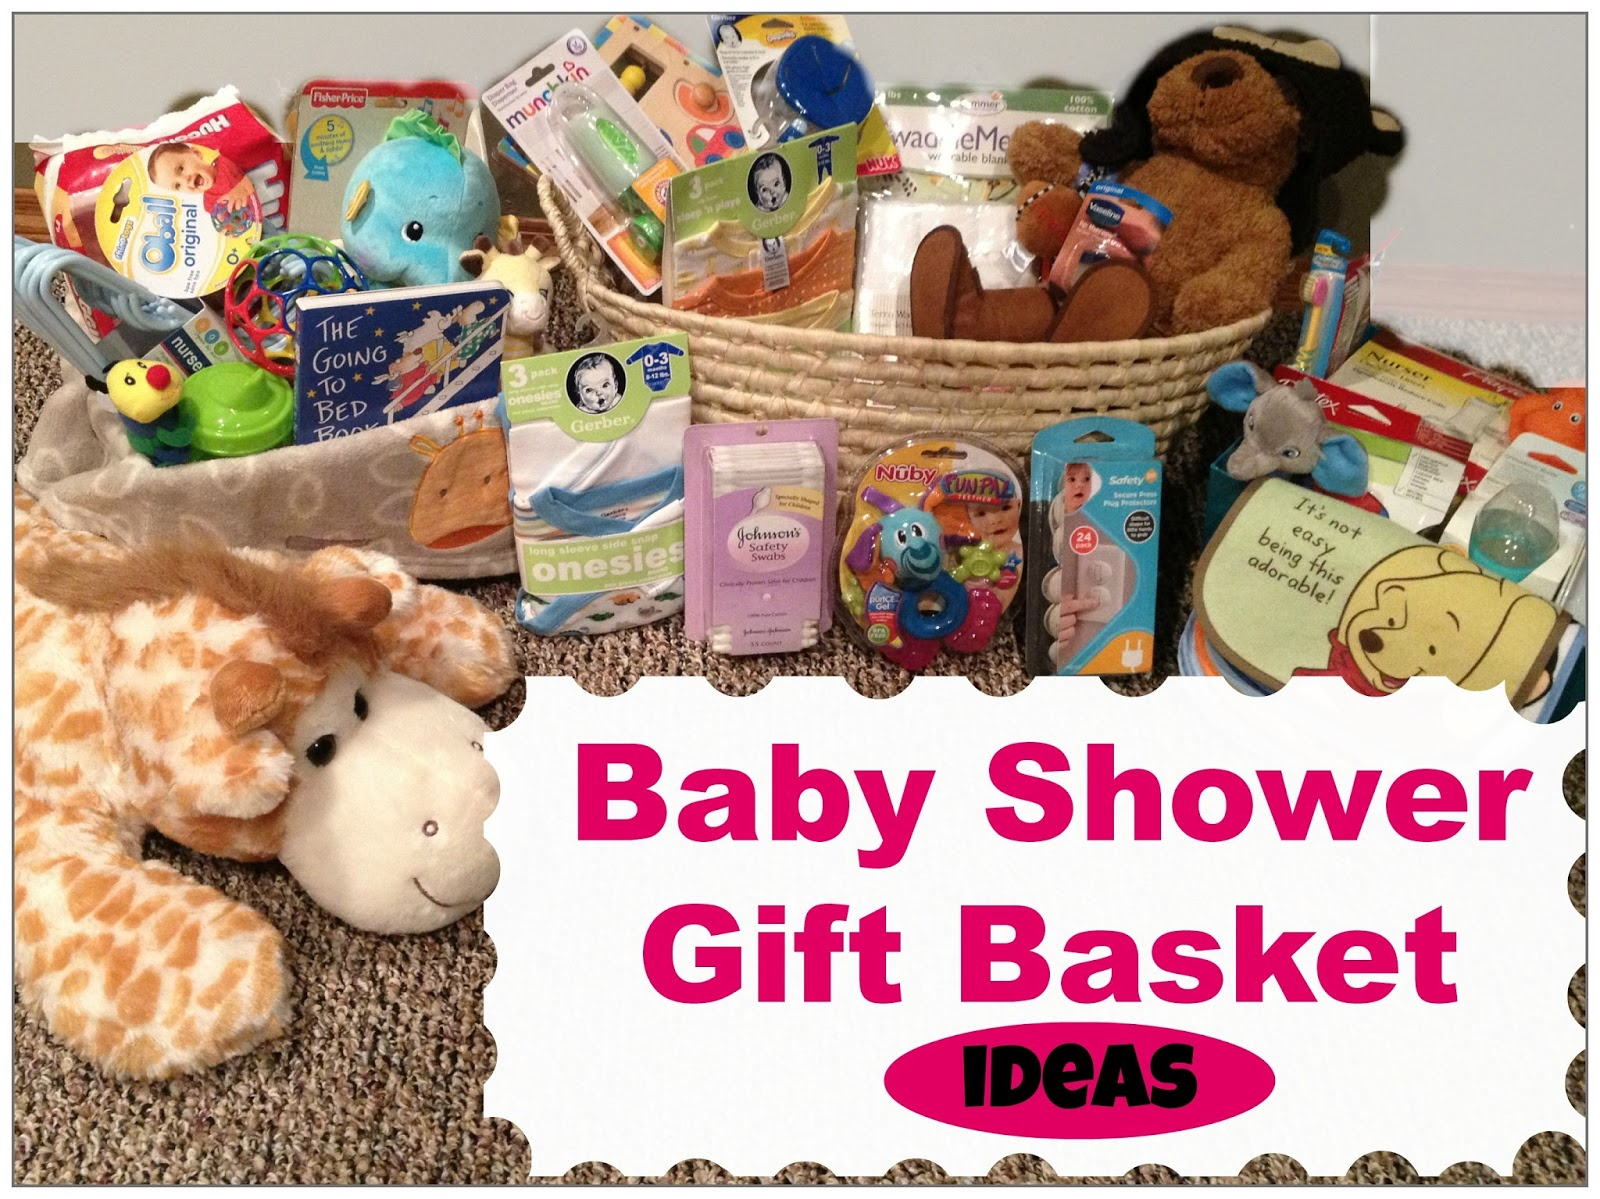 Baby Shower Gift Basket Ideas